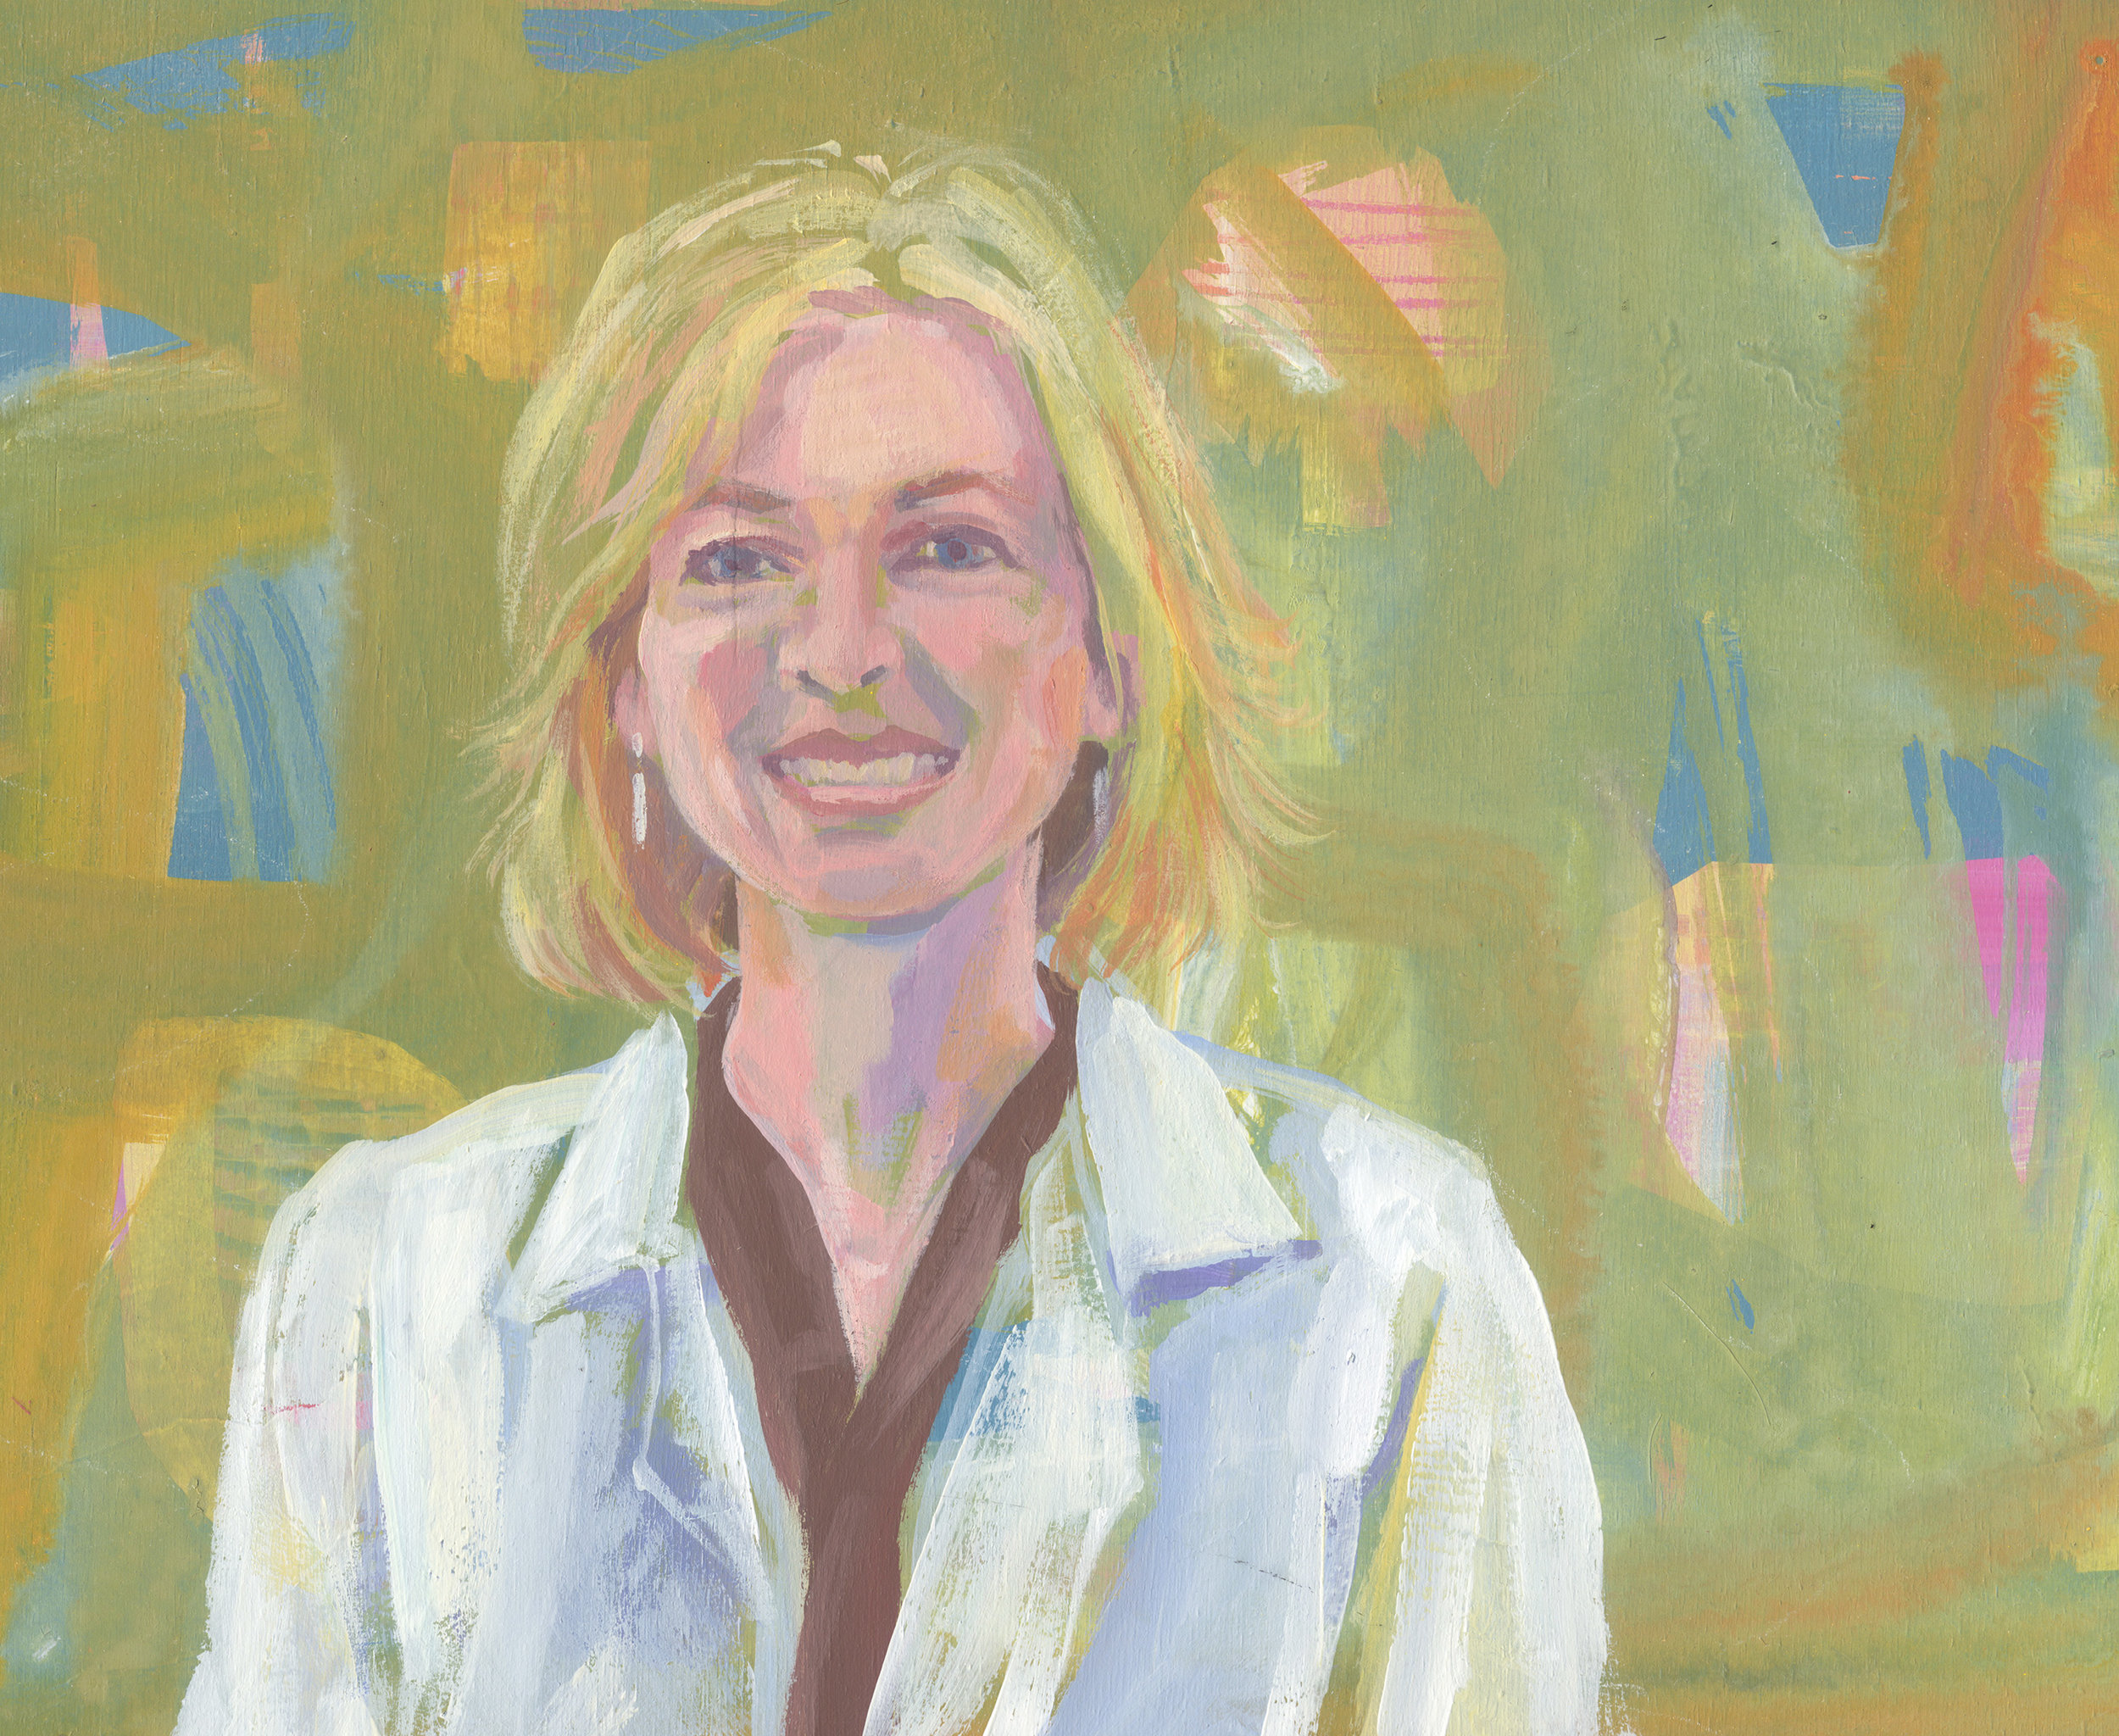 jennifer-Doudna-by-gabriella-buckingham.jpg